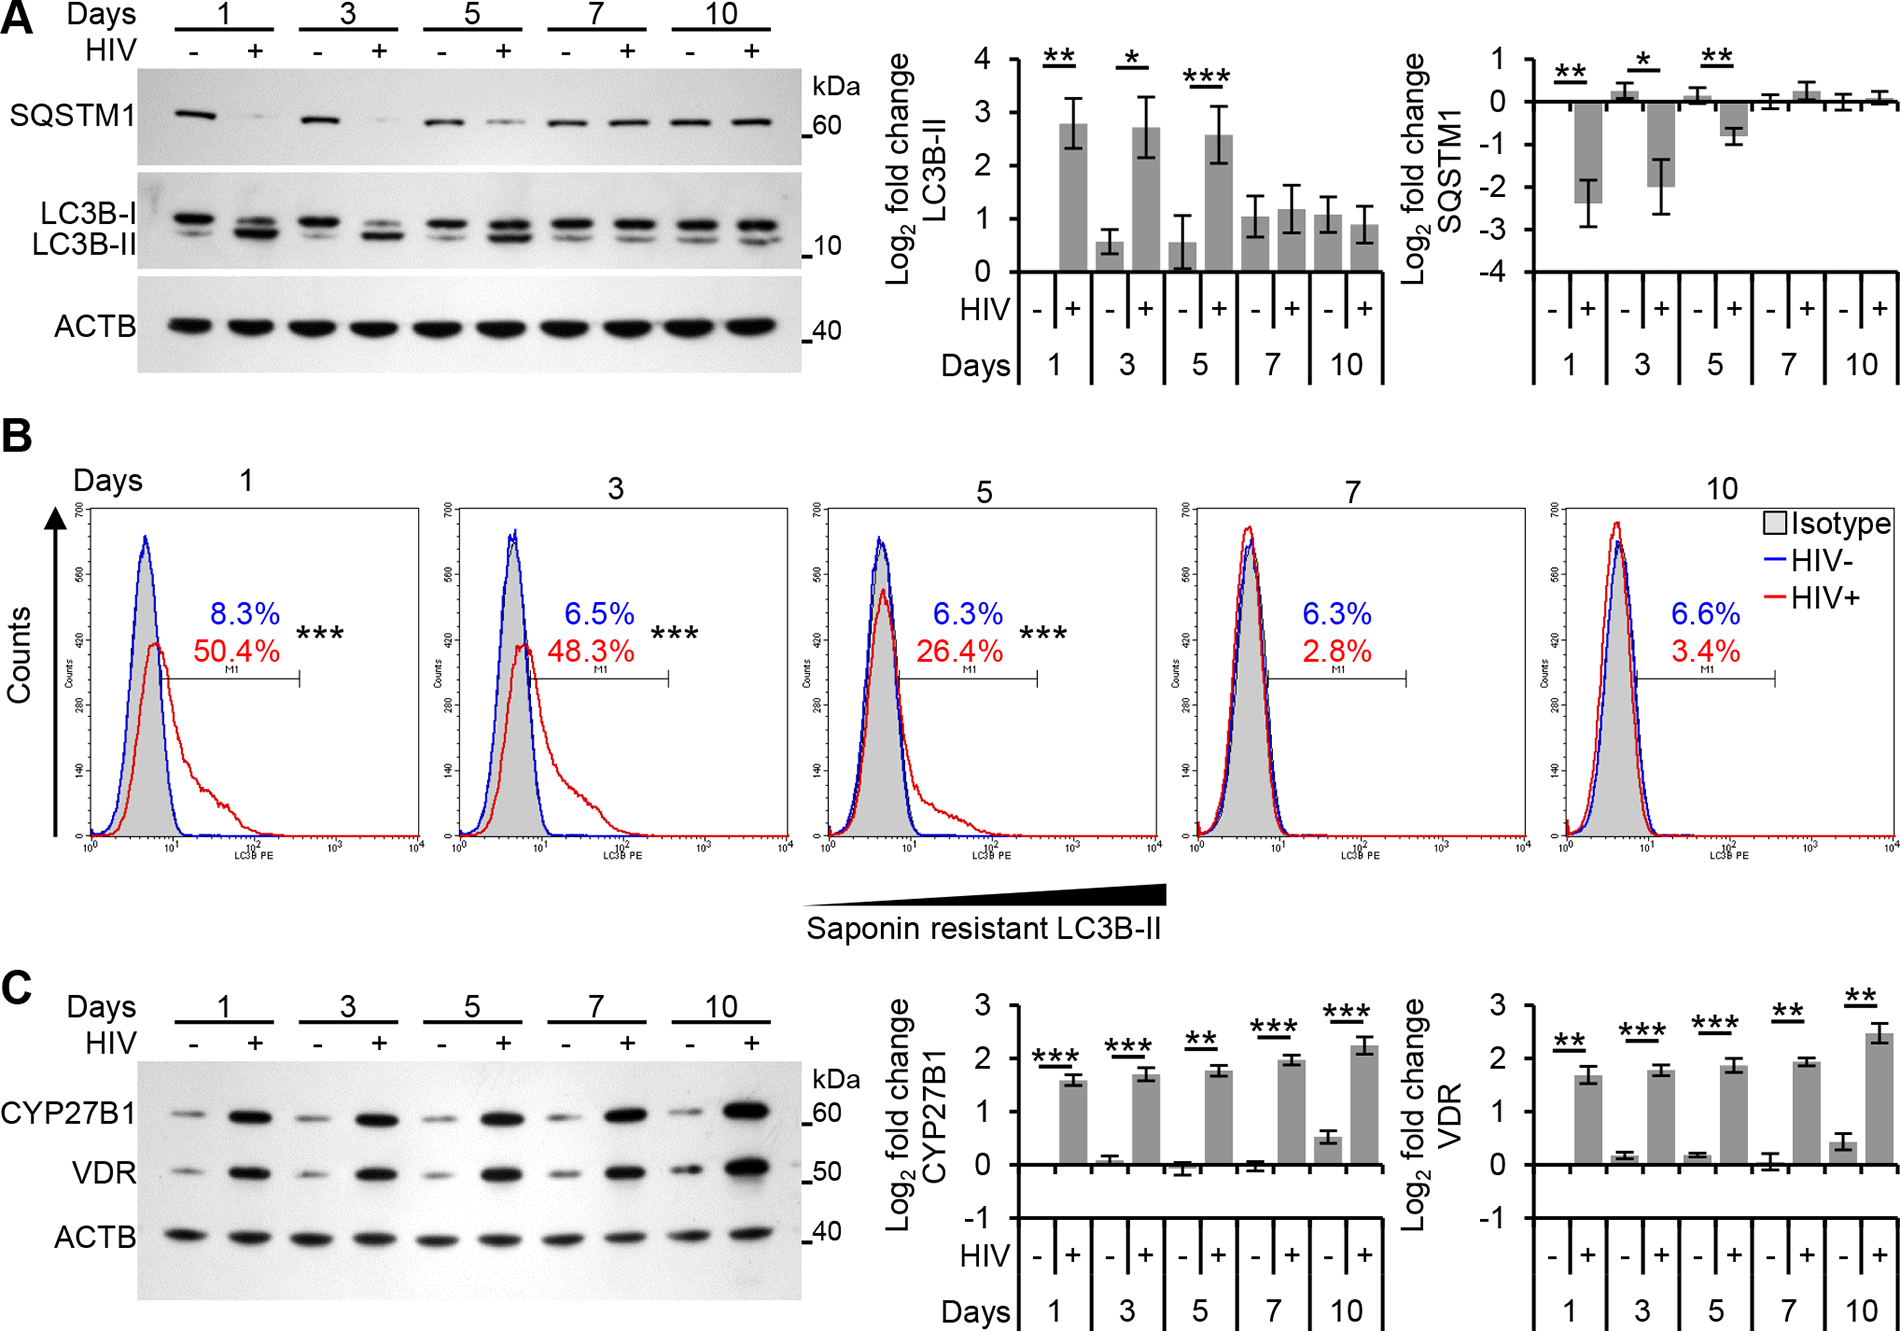 Autophagy is decreased at later time points post-infection in human macrophages.